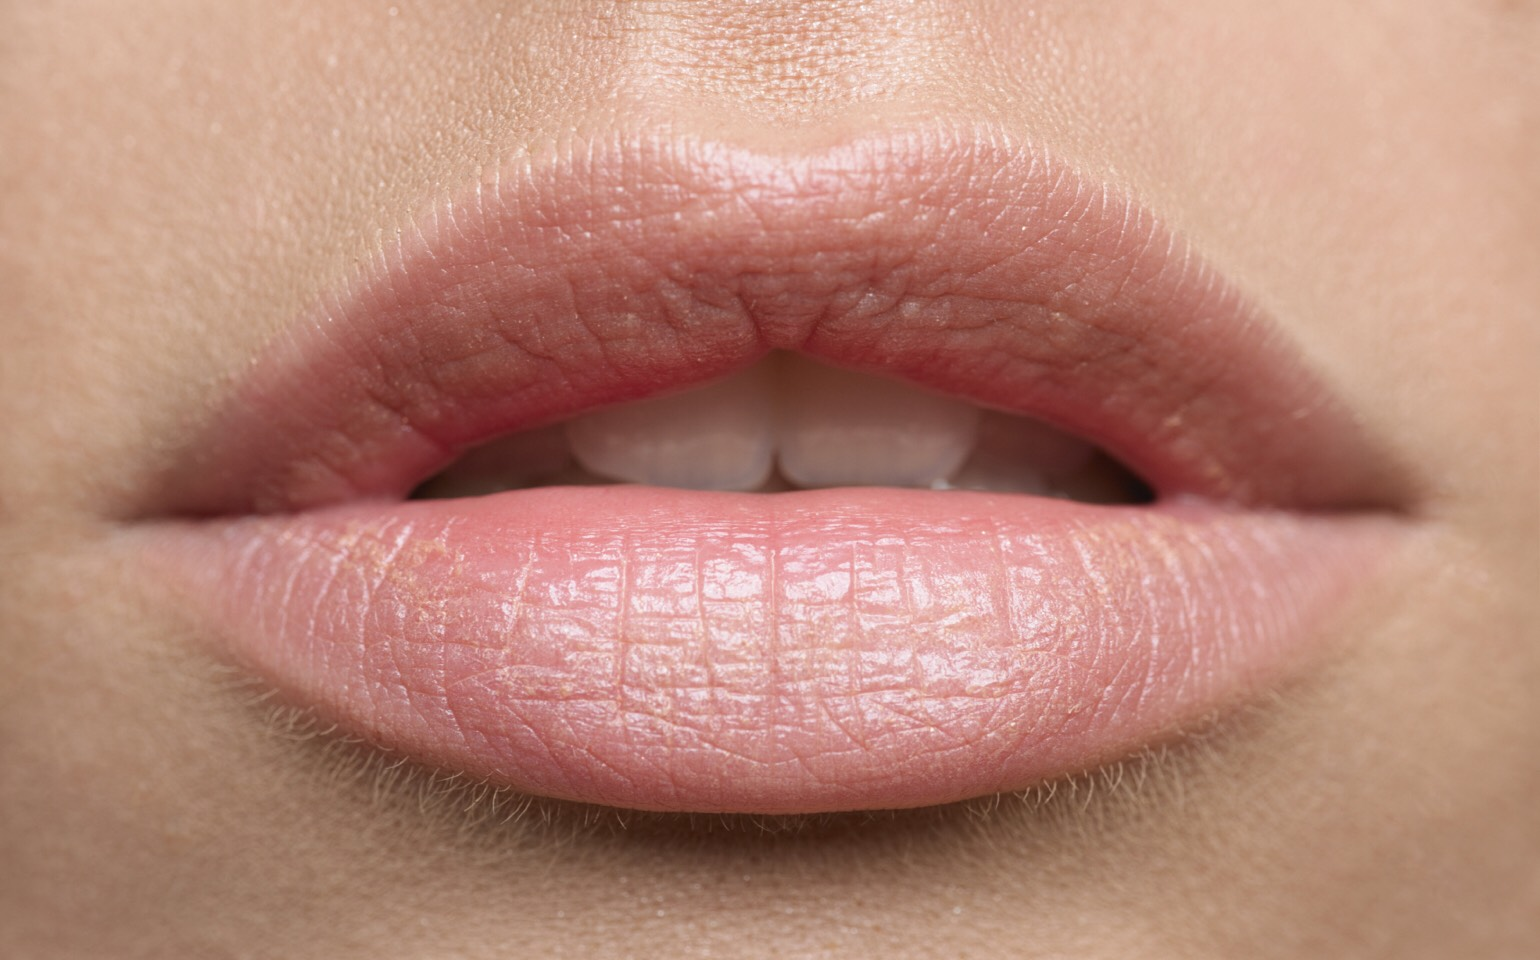 3. Add a clear lipgloss with shimmer to the center of your lips, this will make them appear bigger!